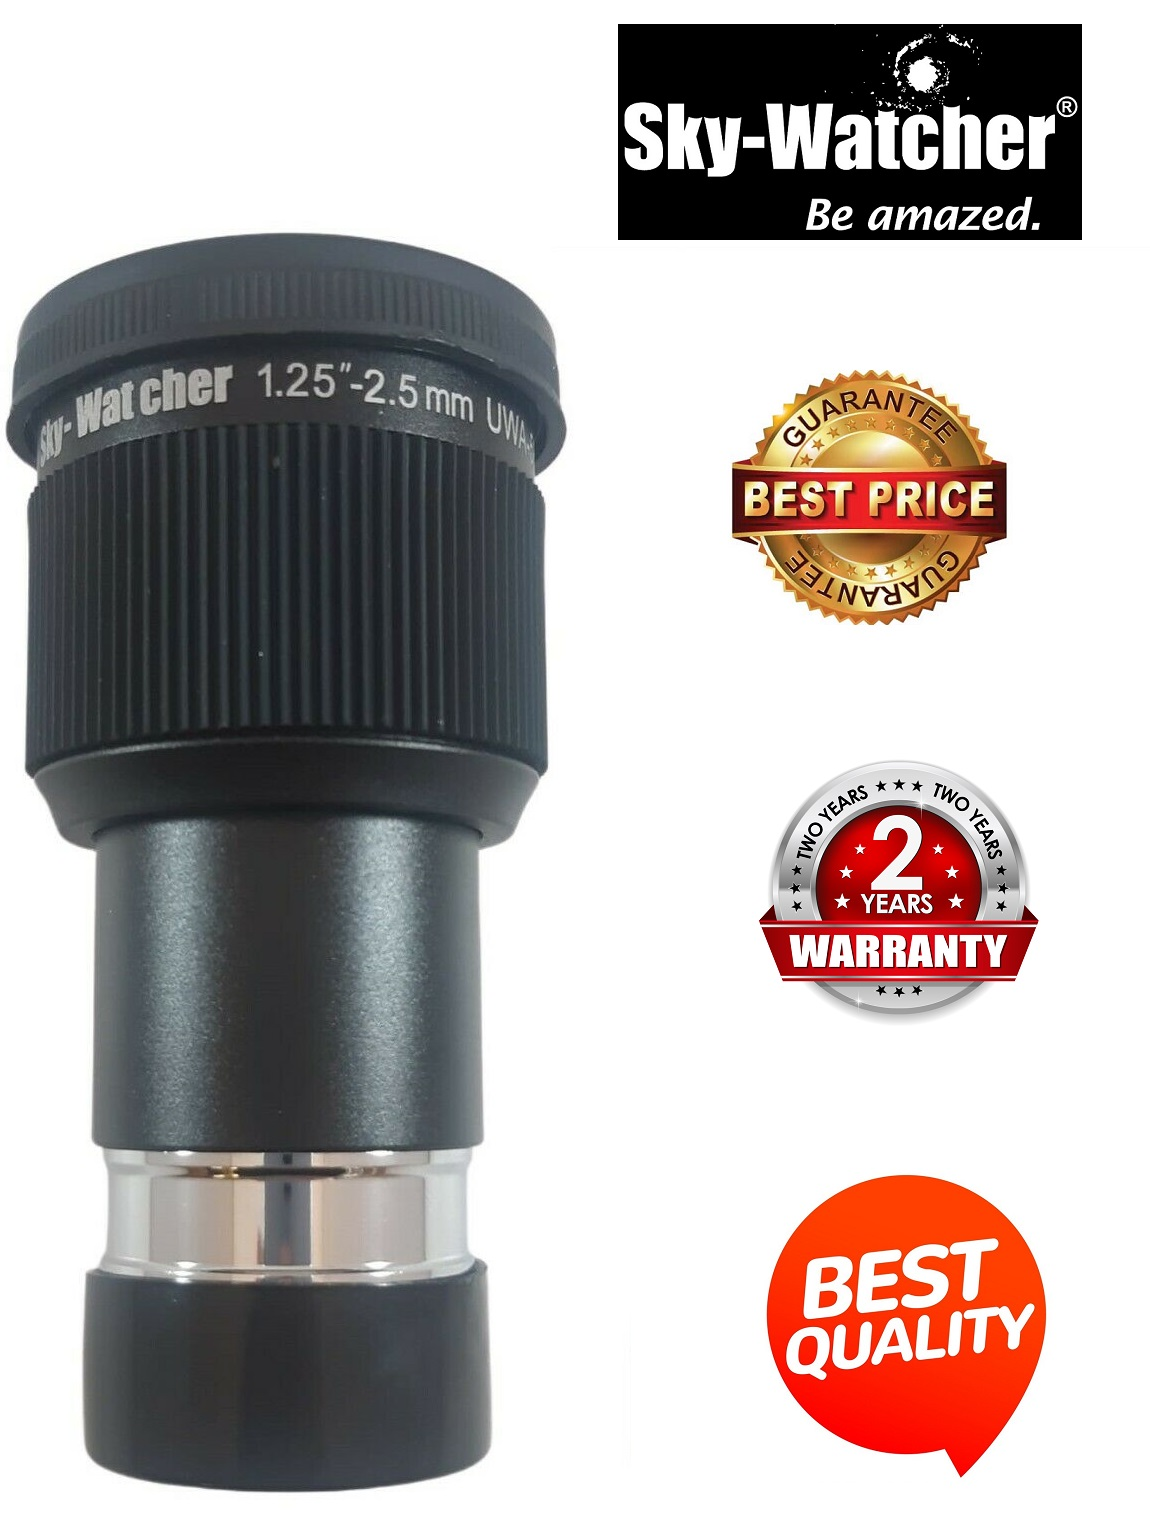 Skywatcher 2.5mm Planetary 58 Degree UWA 1.25 Inch Eyepiece